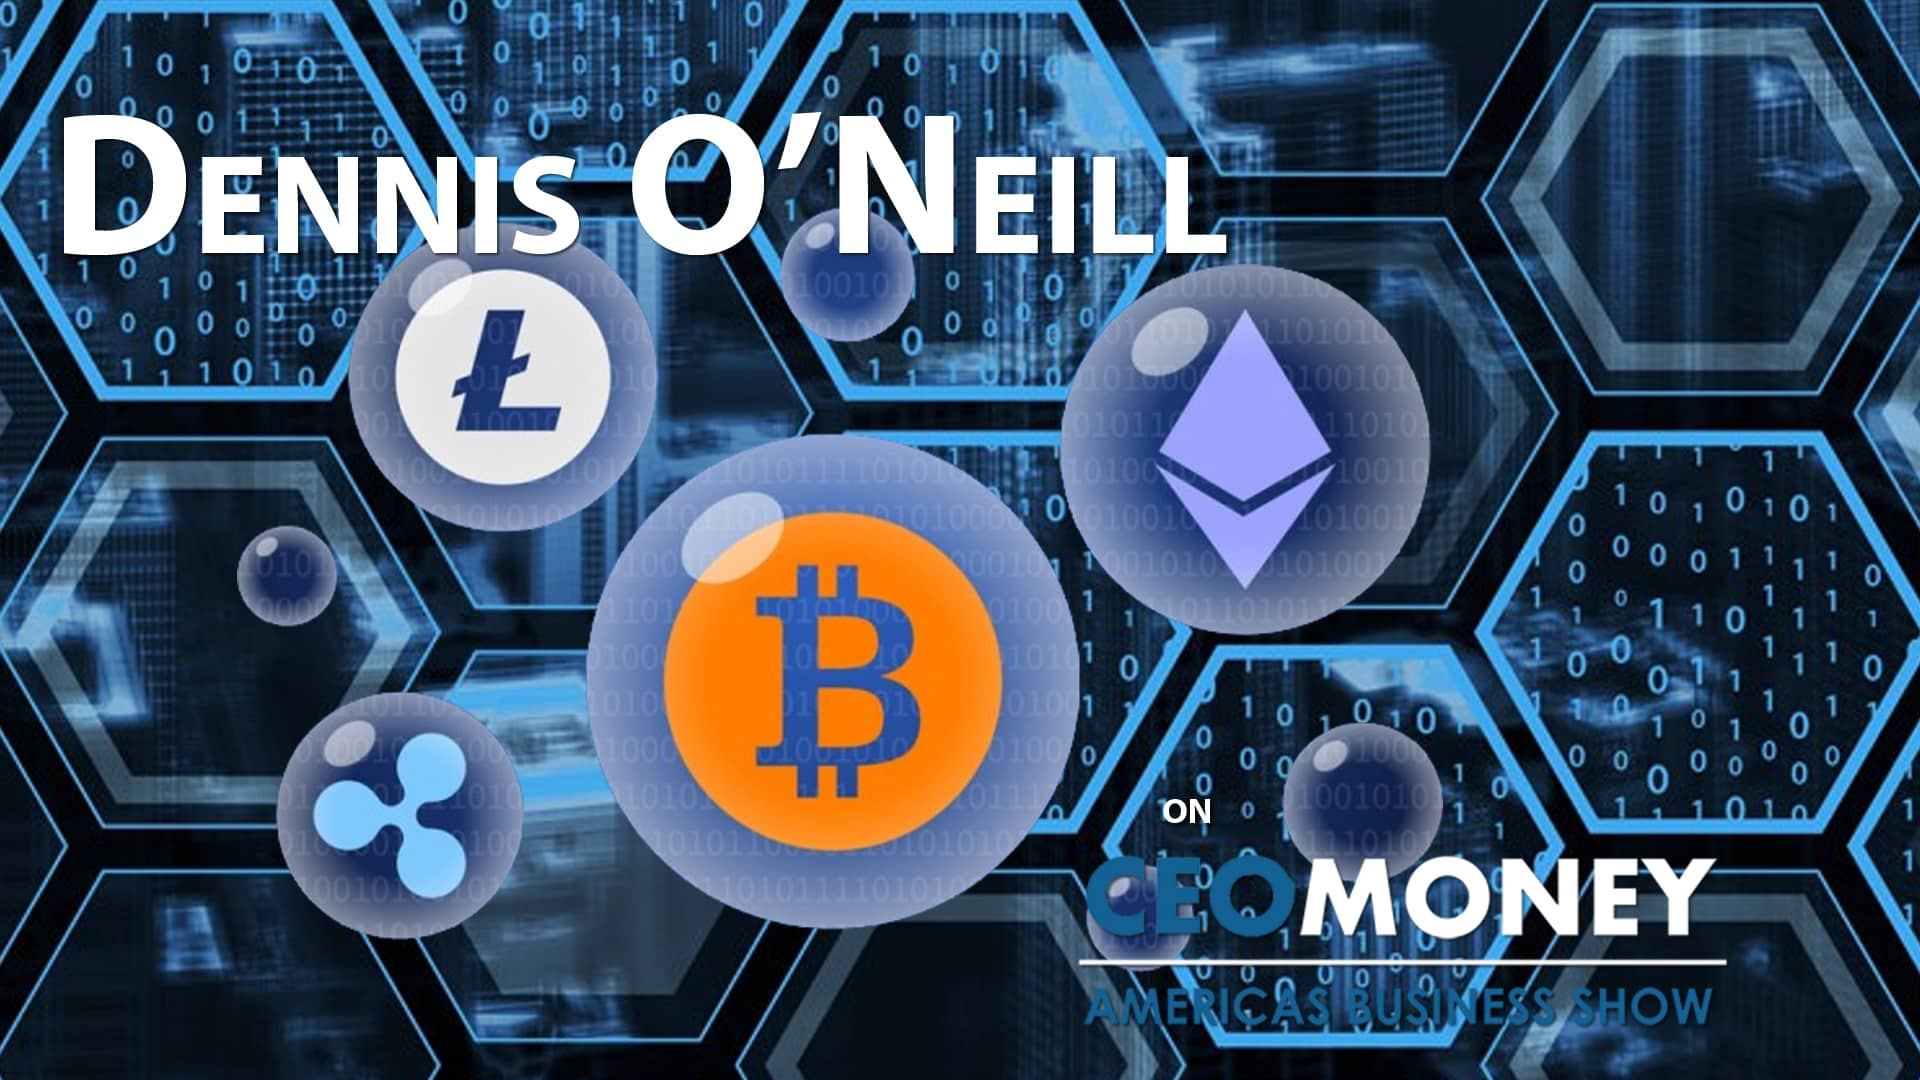 Dennis O'Neill talks about Coinagenda and building relationships with blockchain thought leaders